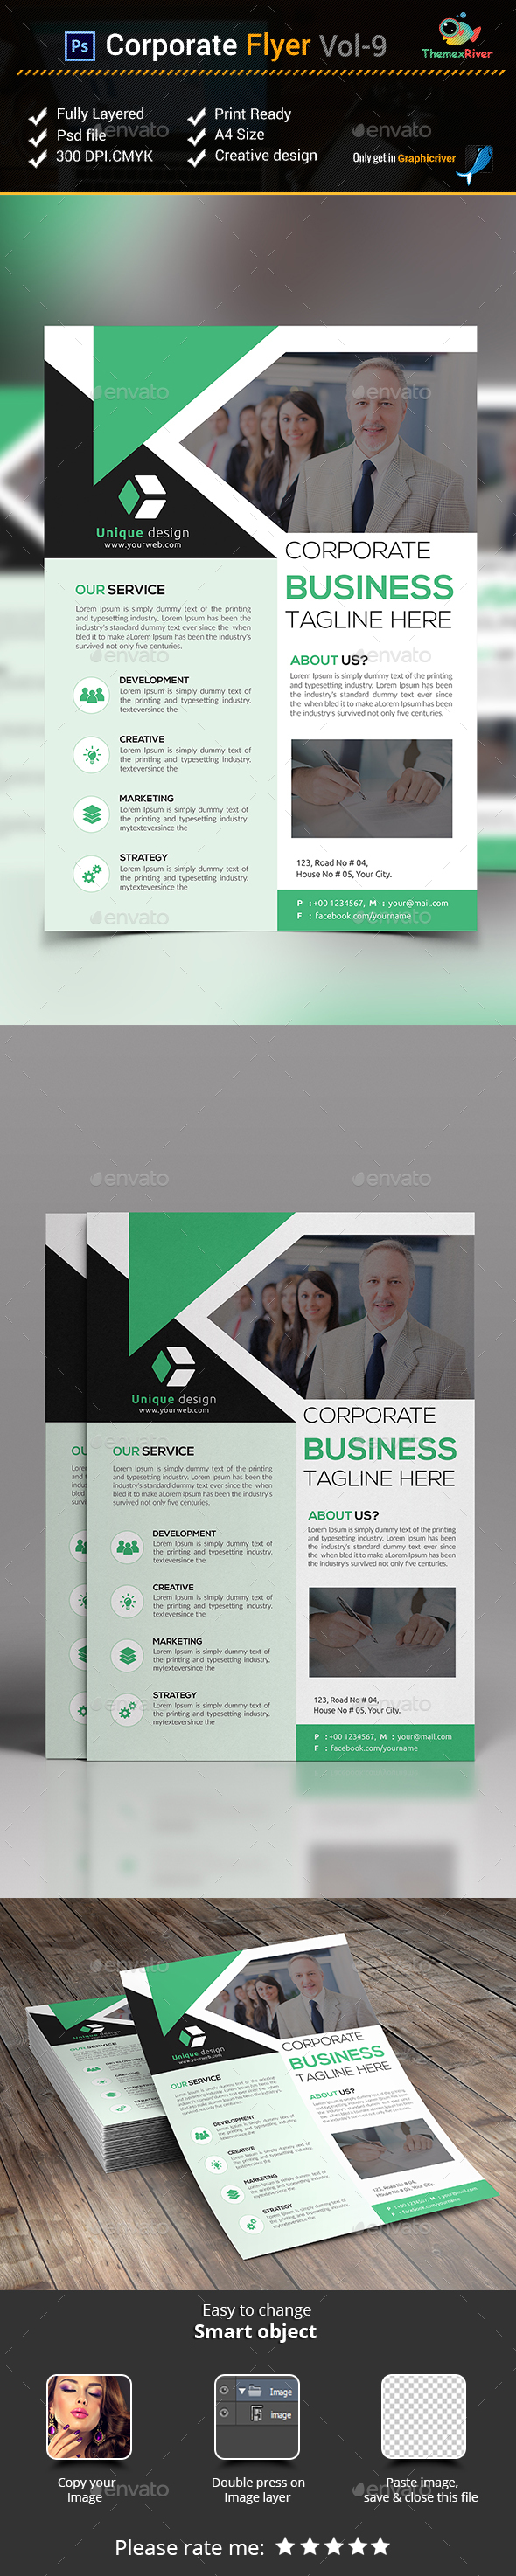 Corporate Flyer Vol- 9 - Corporate Flyers